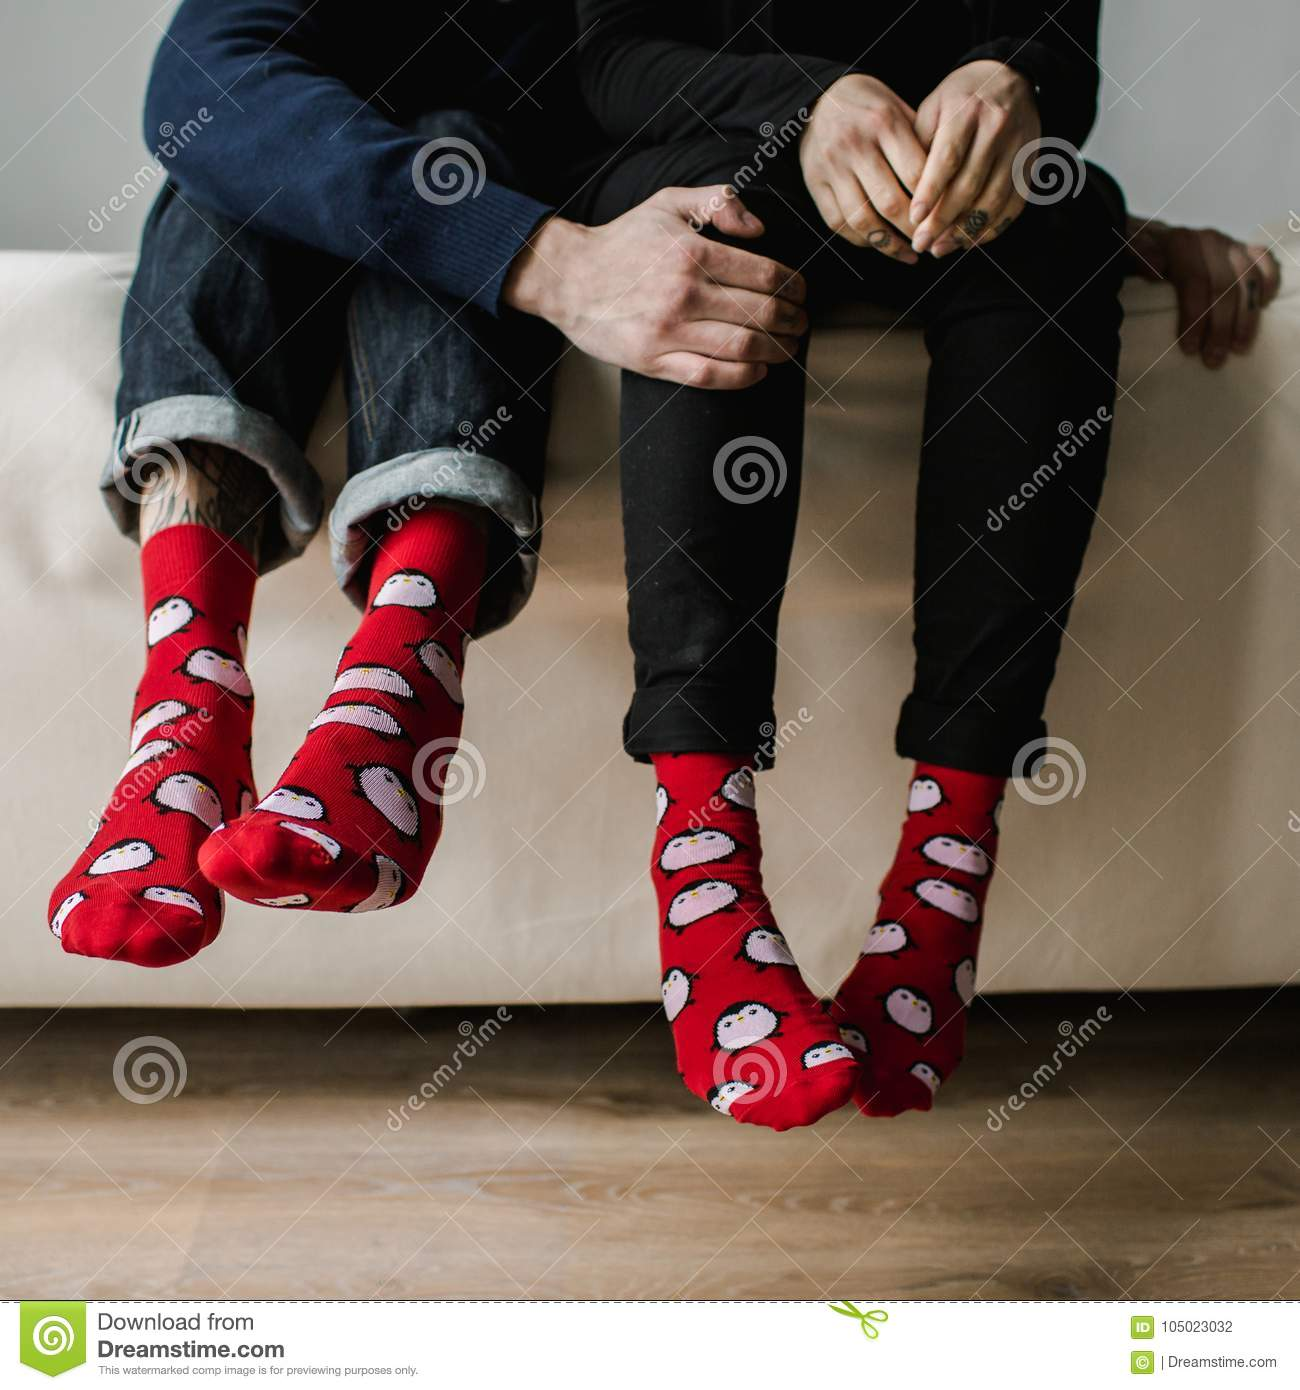 He bought her warm socks, and in the morning he brought her a cup of tea